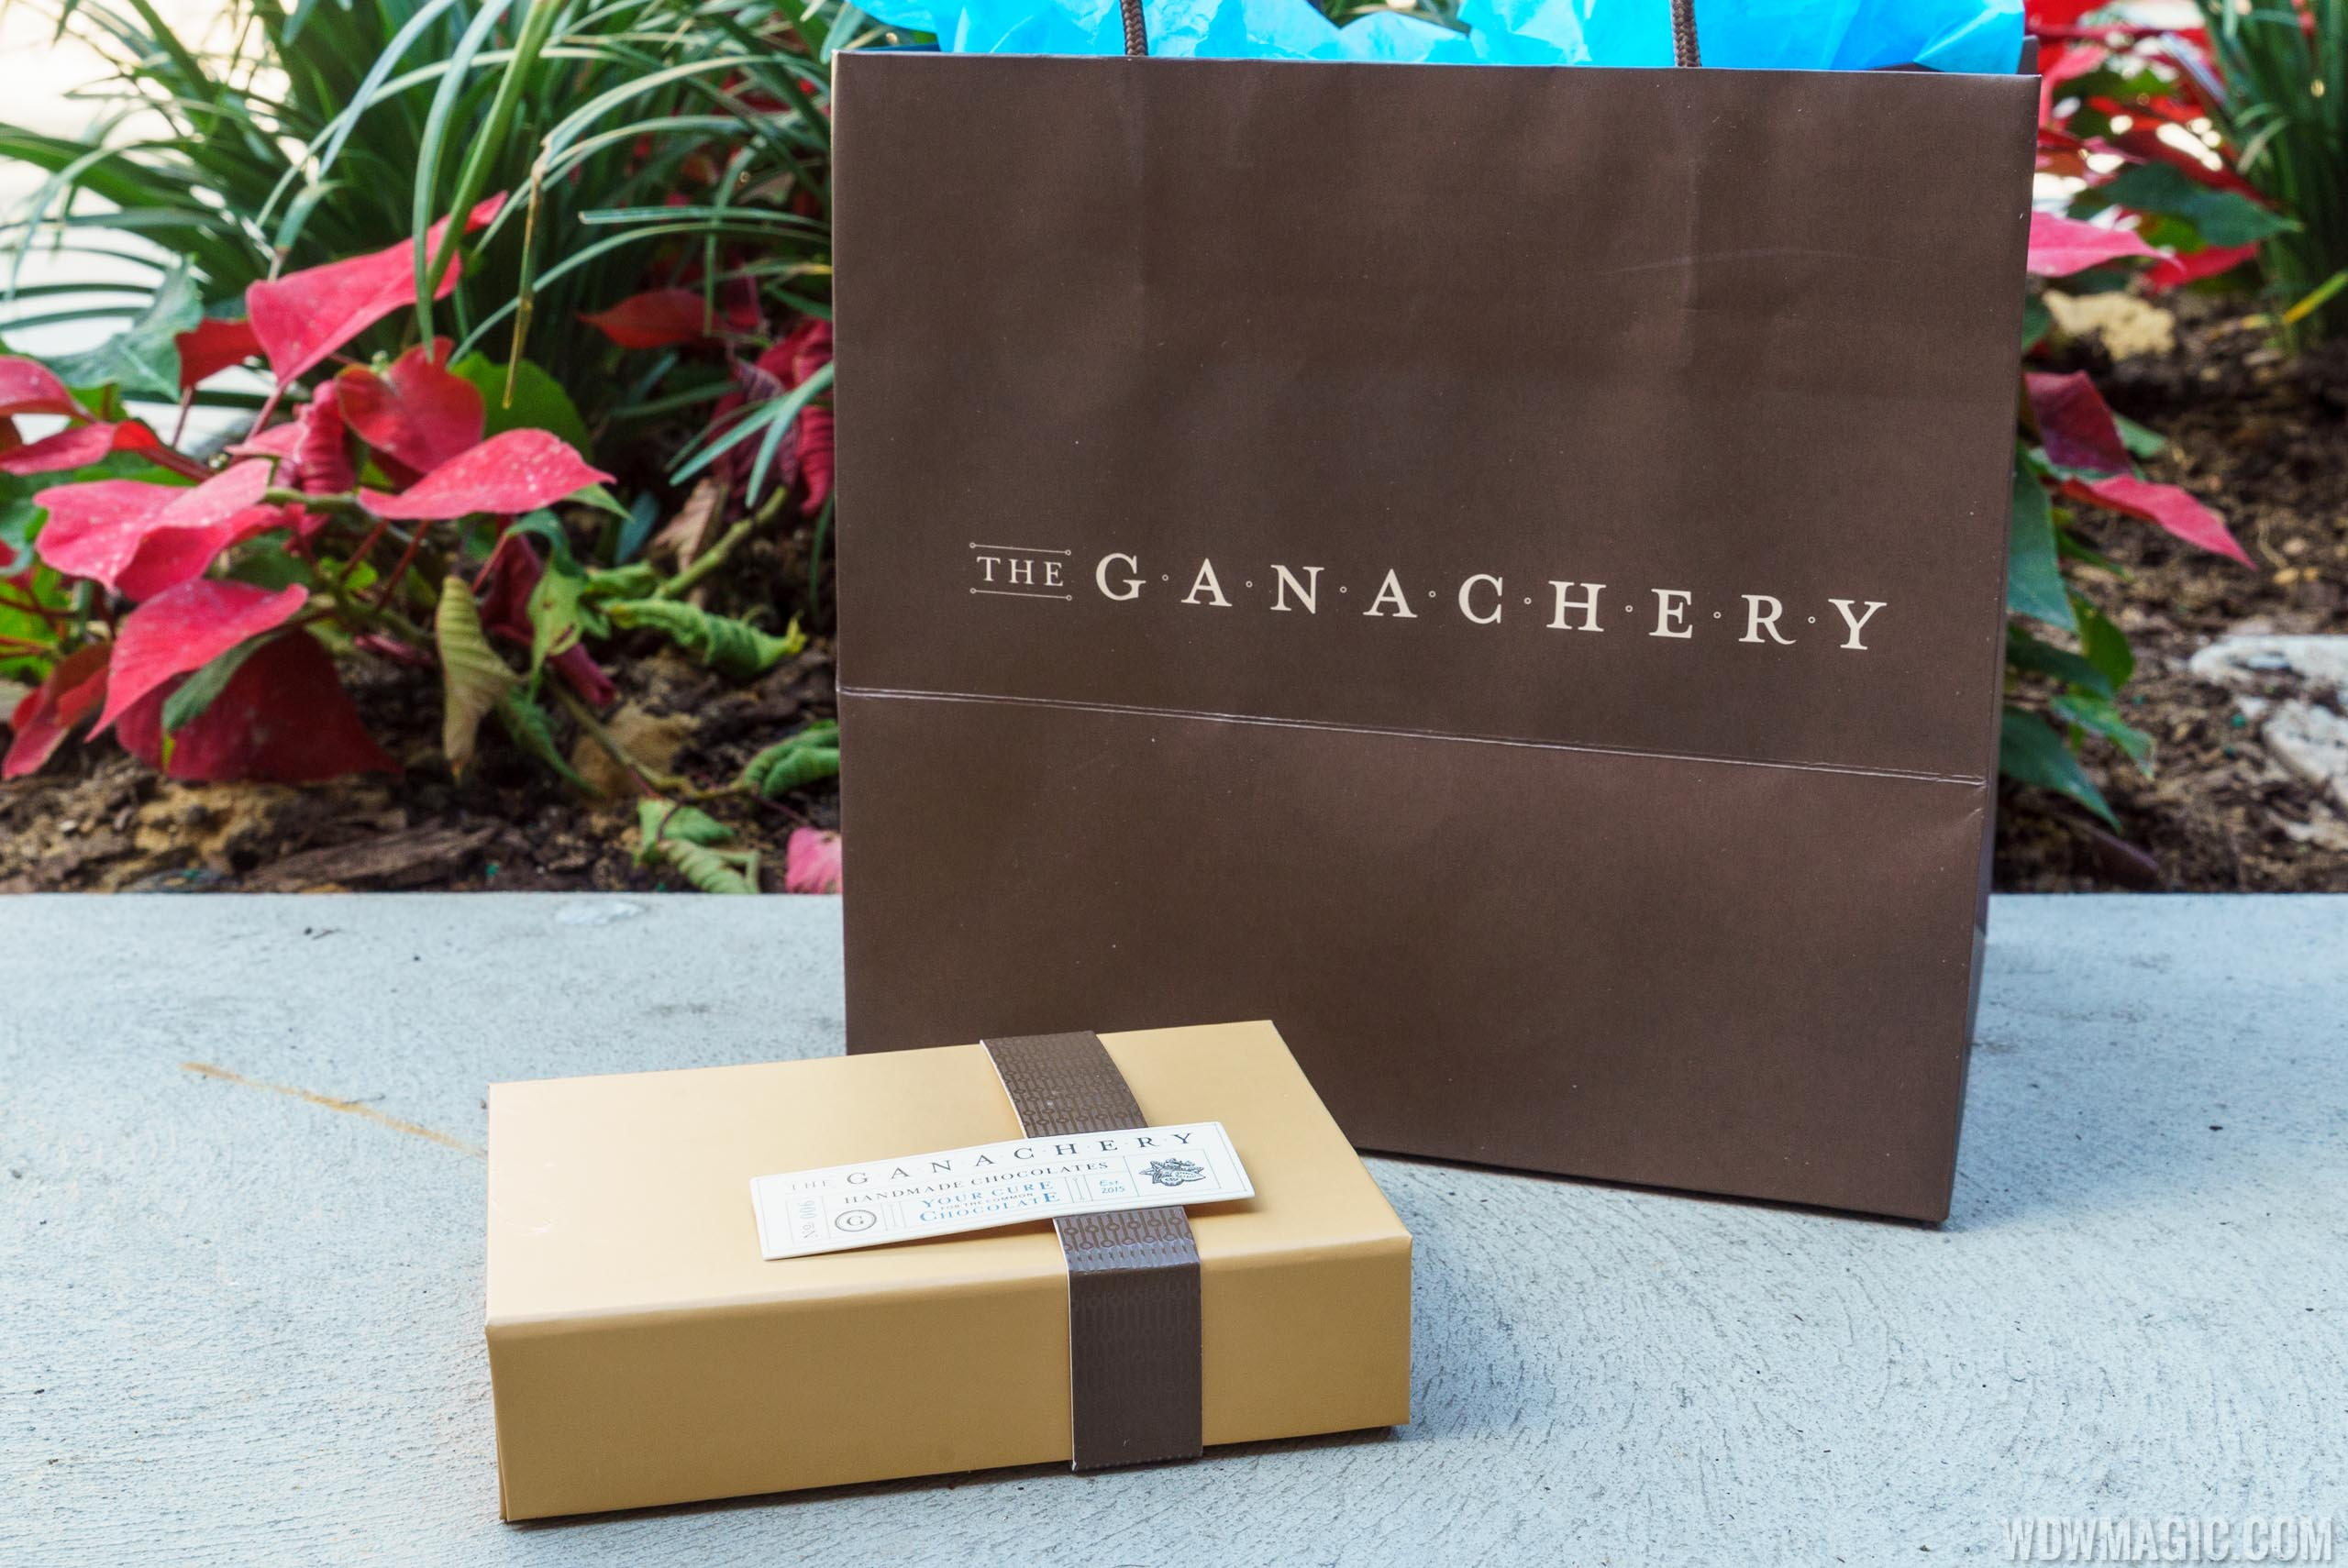 The Ganachery - Ganache assortment gift box